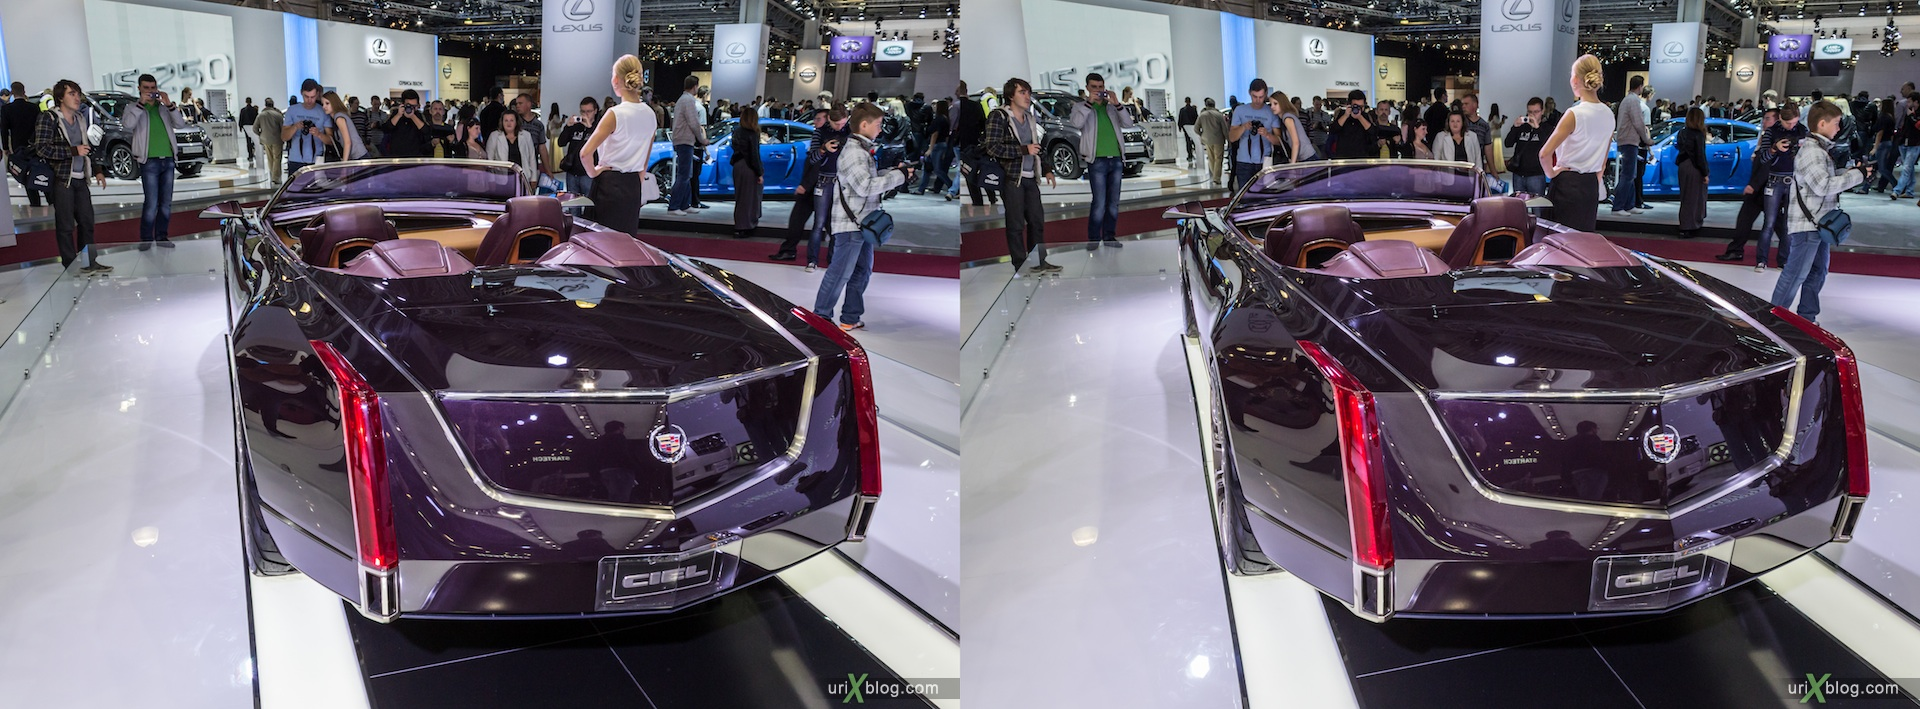 2012, Cadillac CIEL, Moscow International Automobile Salon, auto show, 3D, stereo pair, cross-eyed, crossview